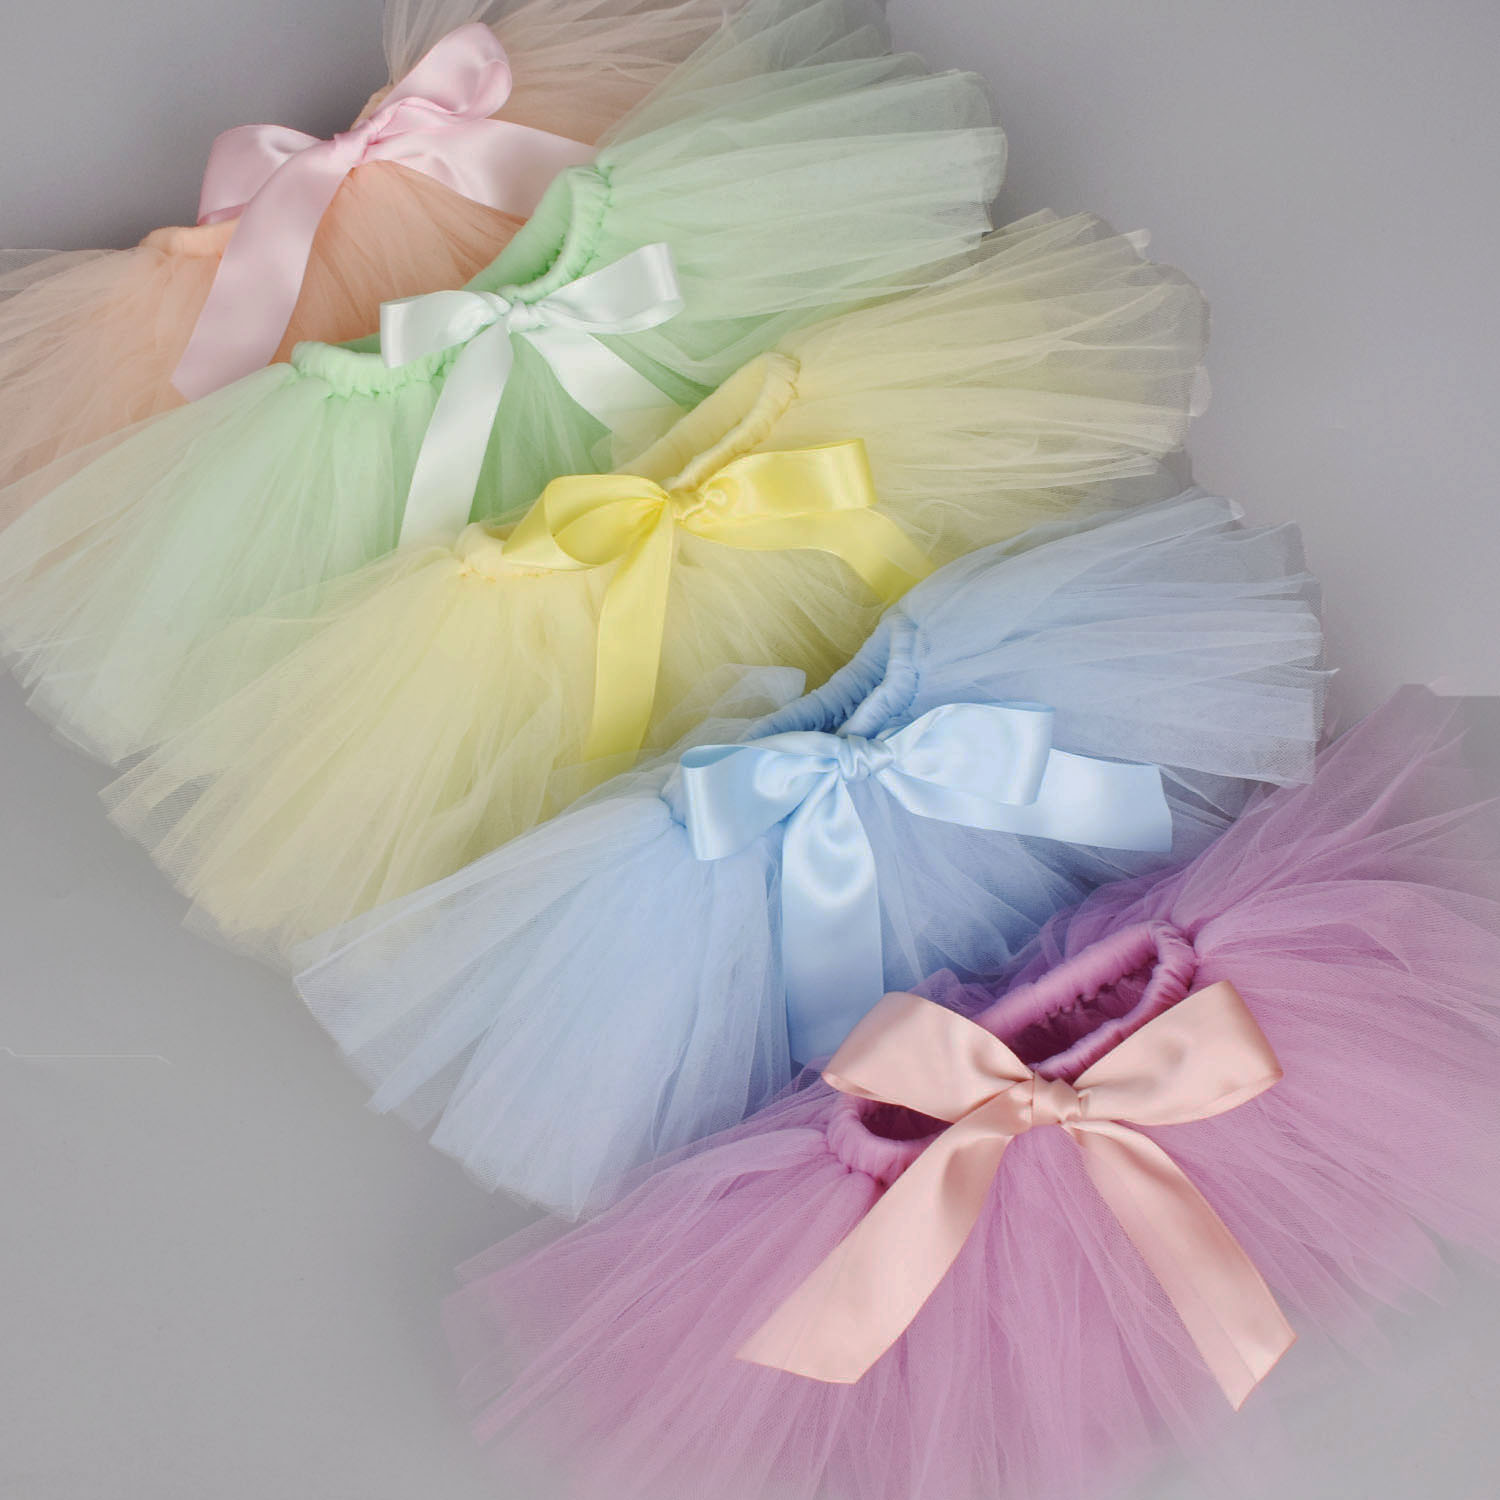 Newborn Baby Girls Tutu Skirt & Headband Set Newborn Photography Props Infant Fluffy Baby Tulle Skirt Set 0-12M 18 Color Options